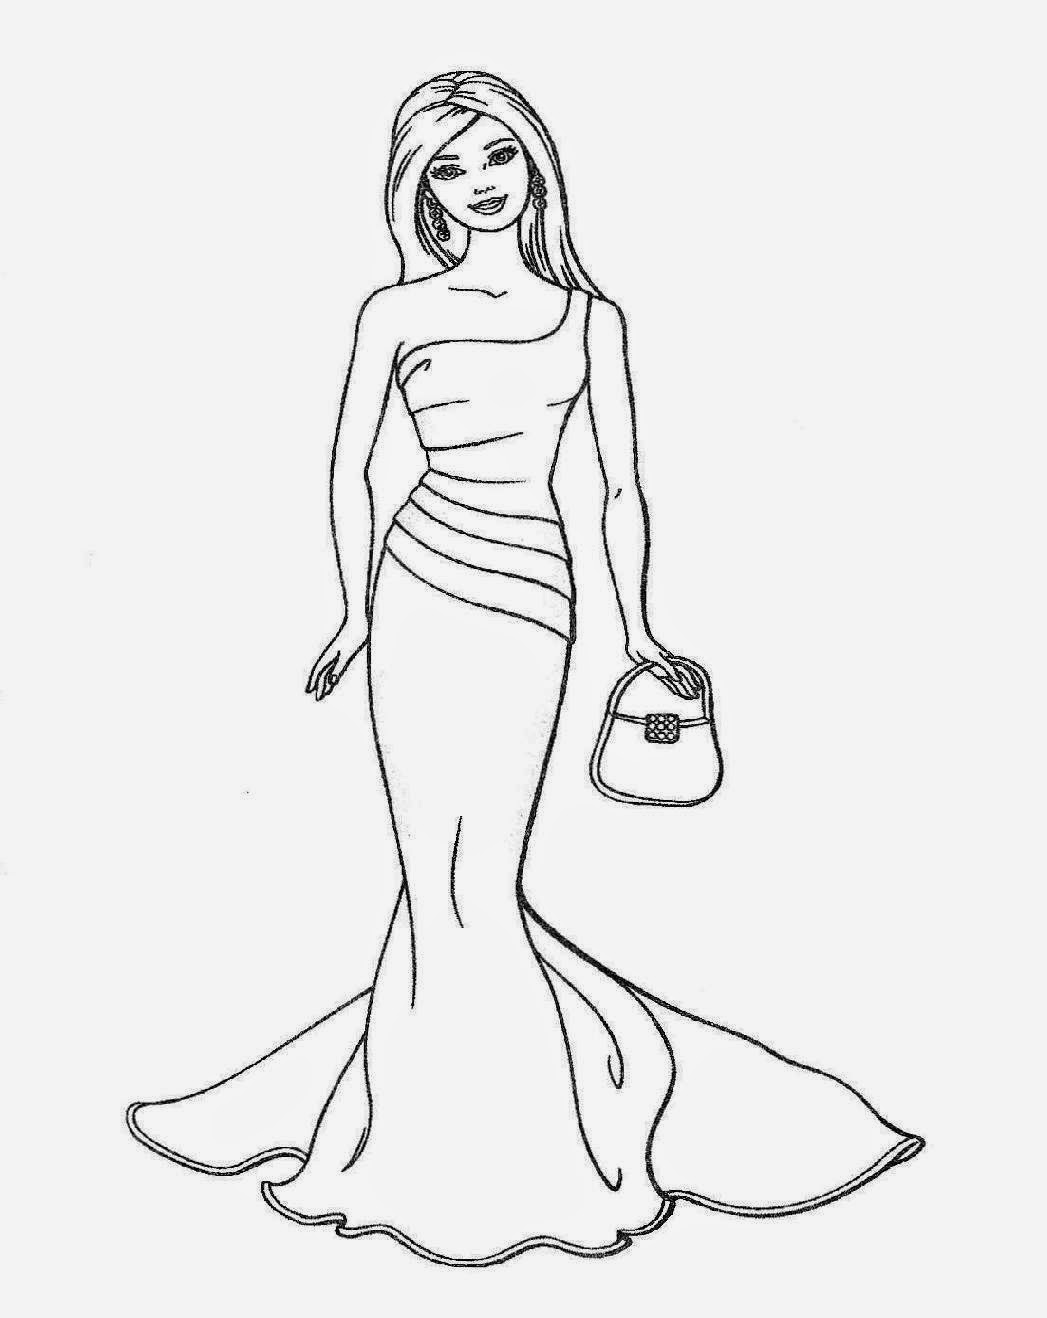 Barbie coloring sheets free coloring sheet for Barbie and the diamond castle coloring pages